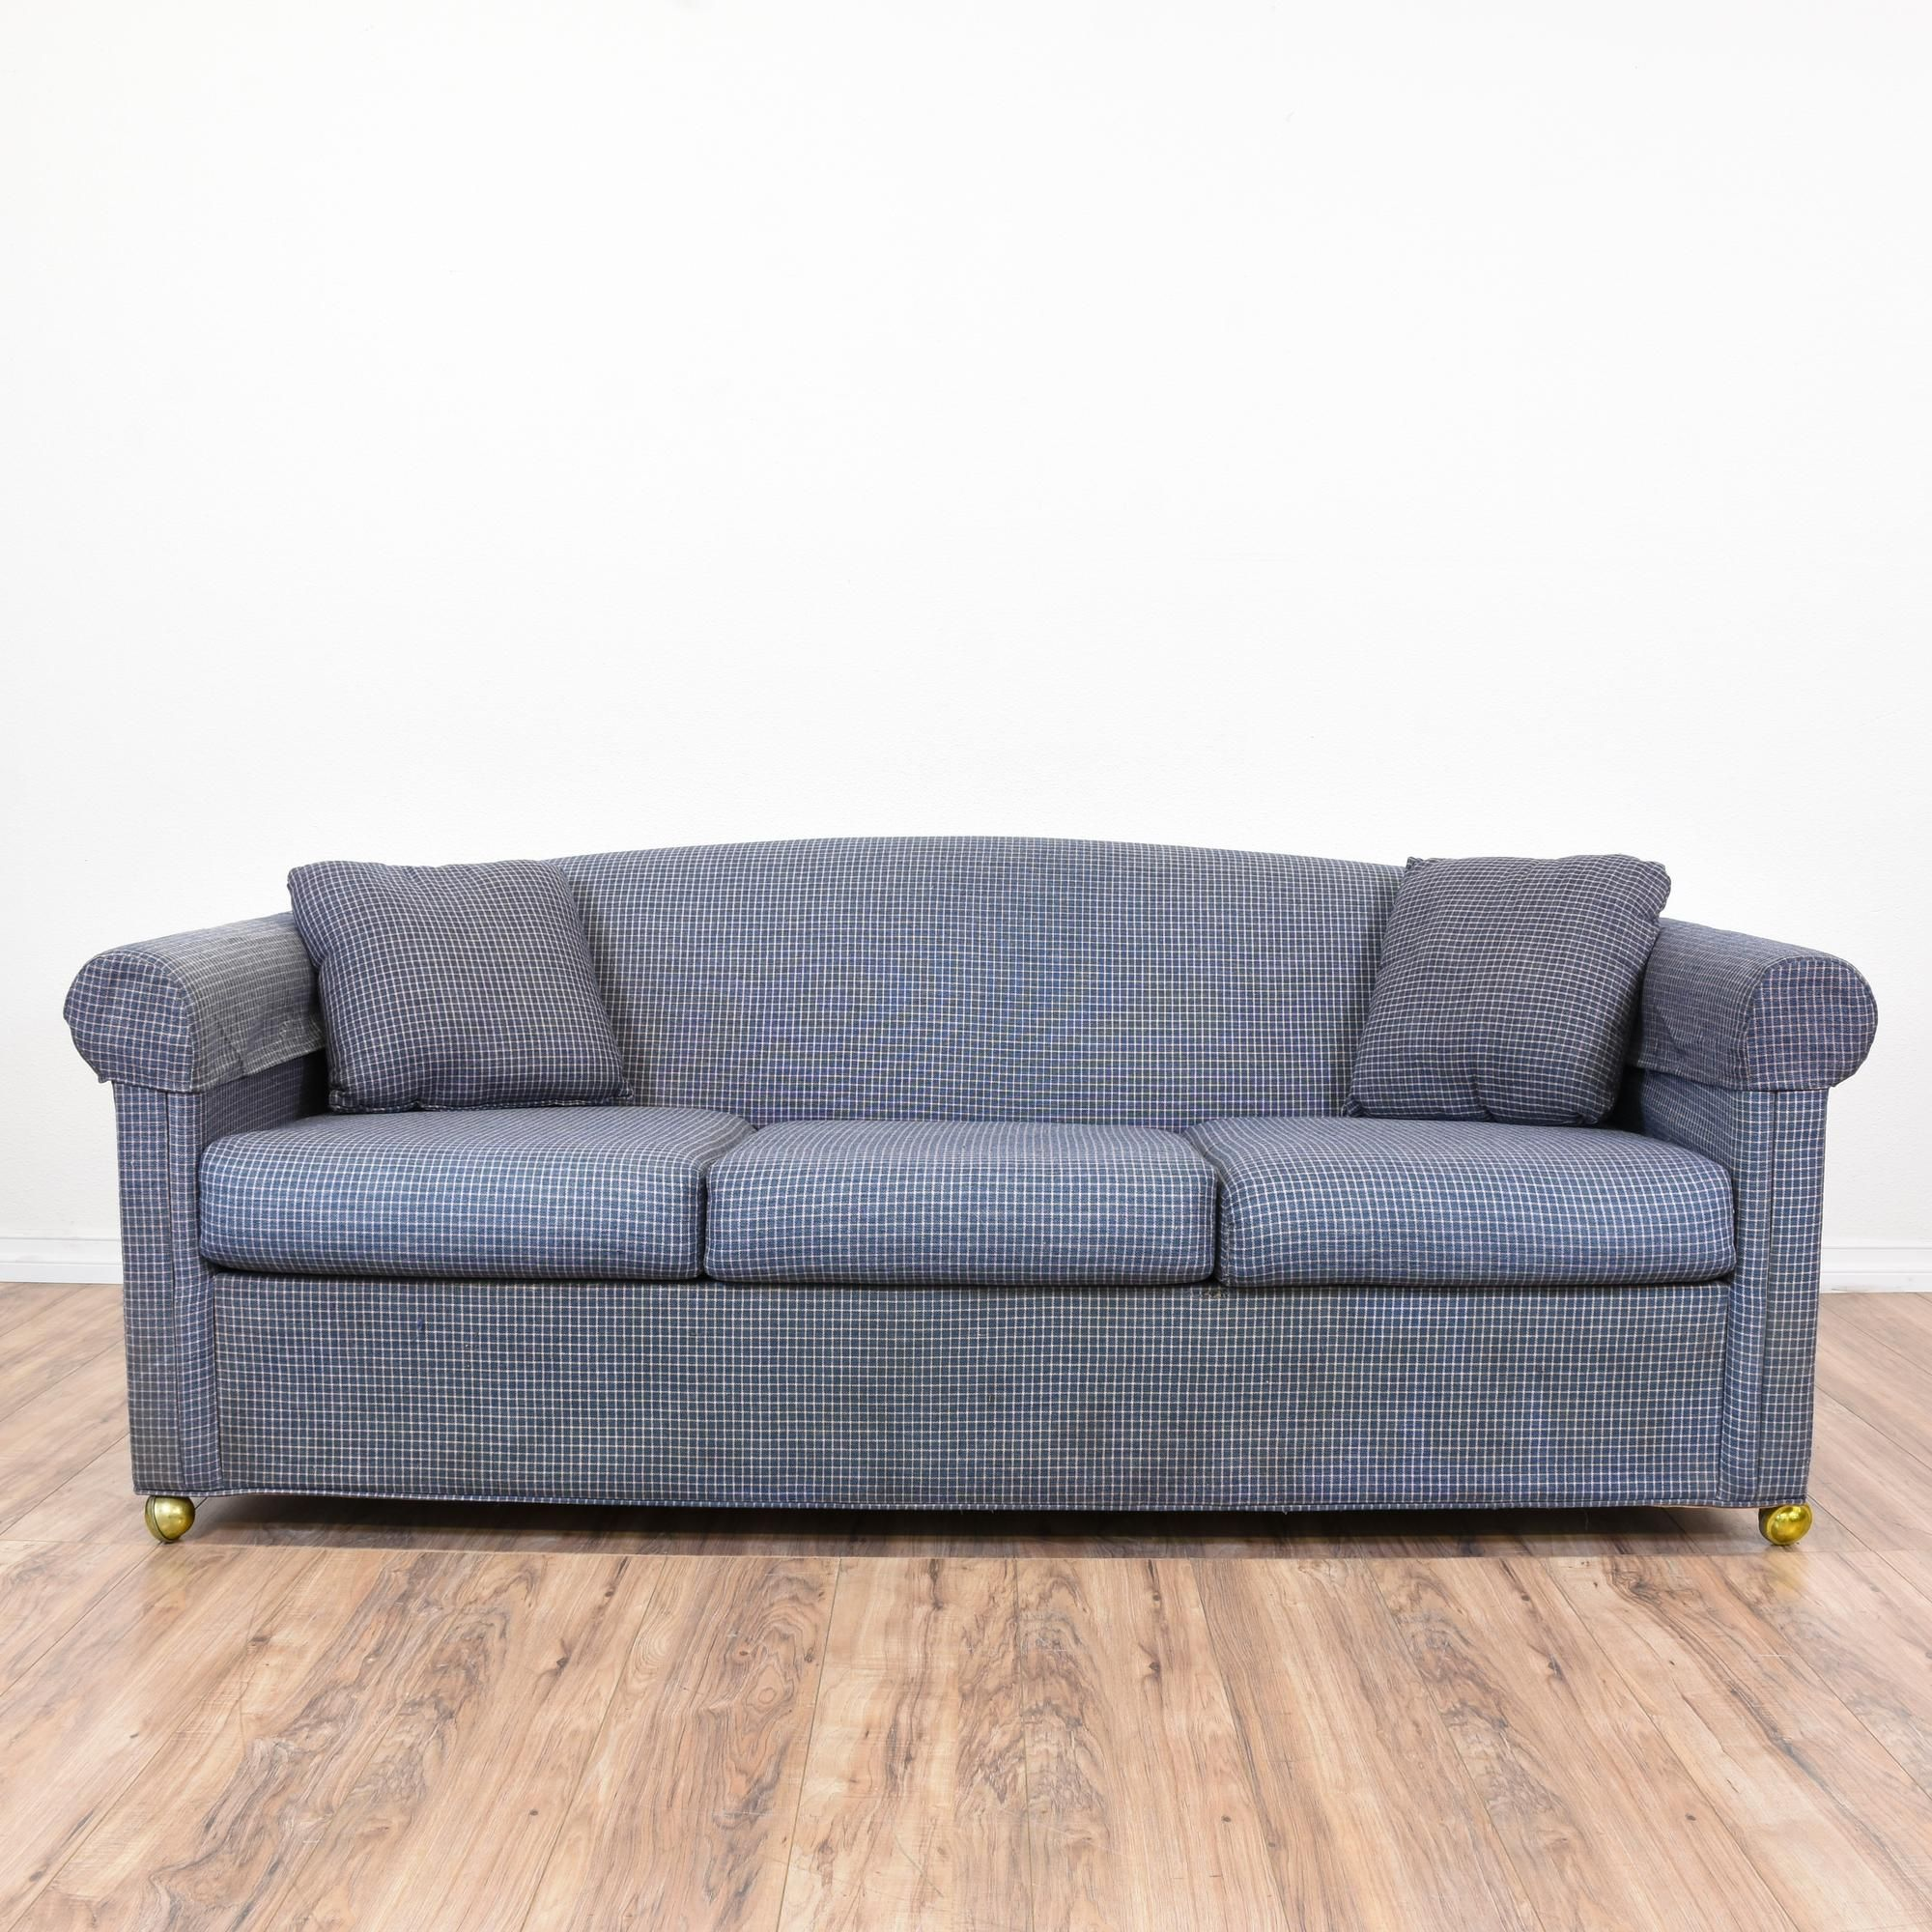 this contemporary sleeper sofa is upholstered in a dark navy blue with a white grid print this. Black Bedroom Furniture Sets. Home Design Ideas